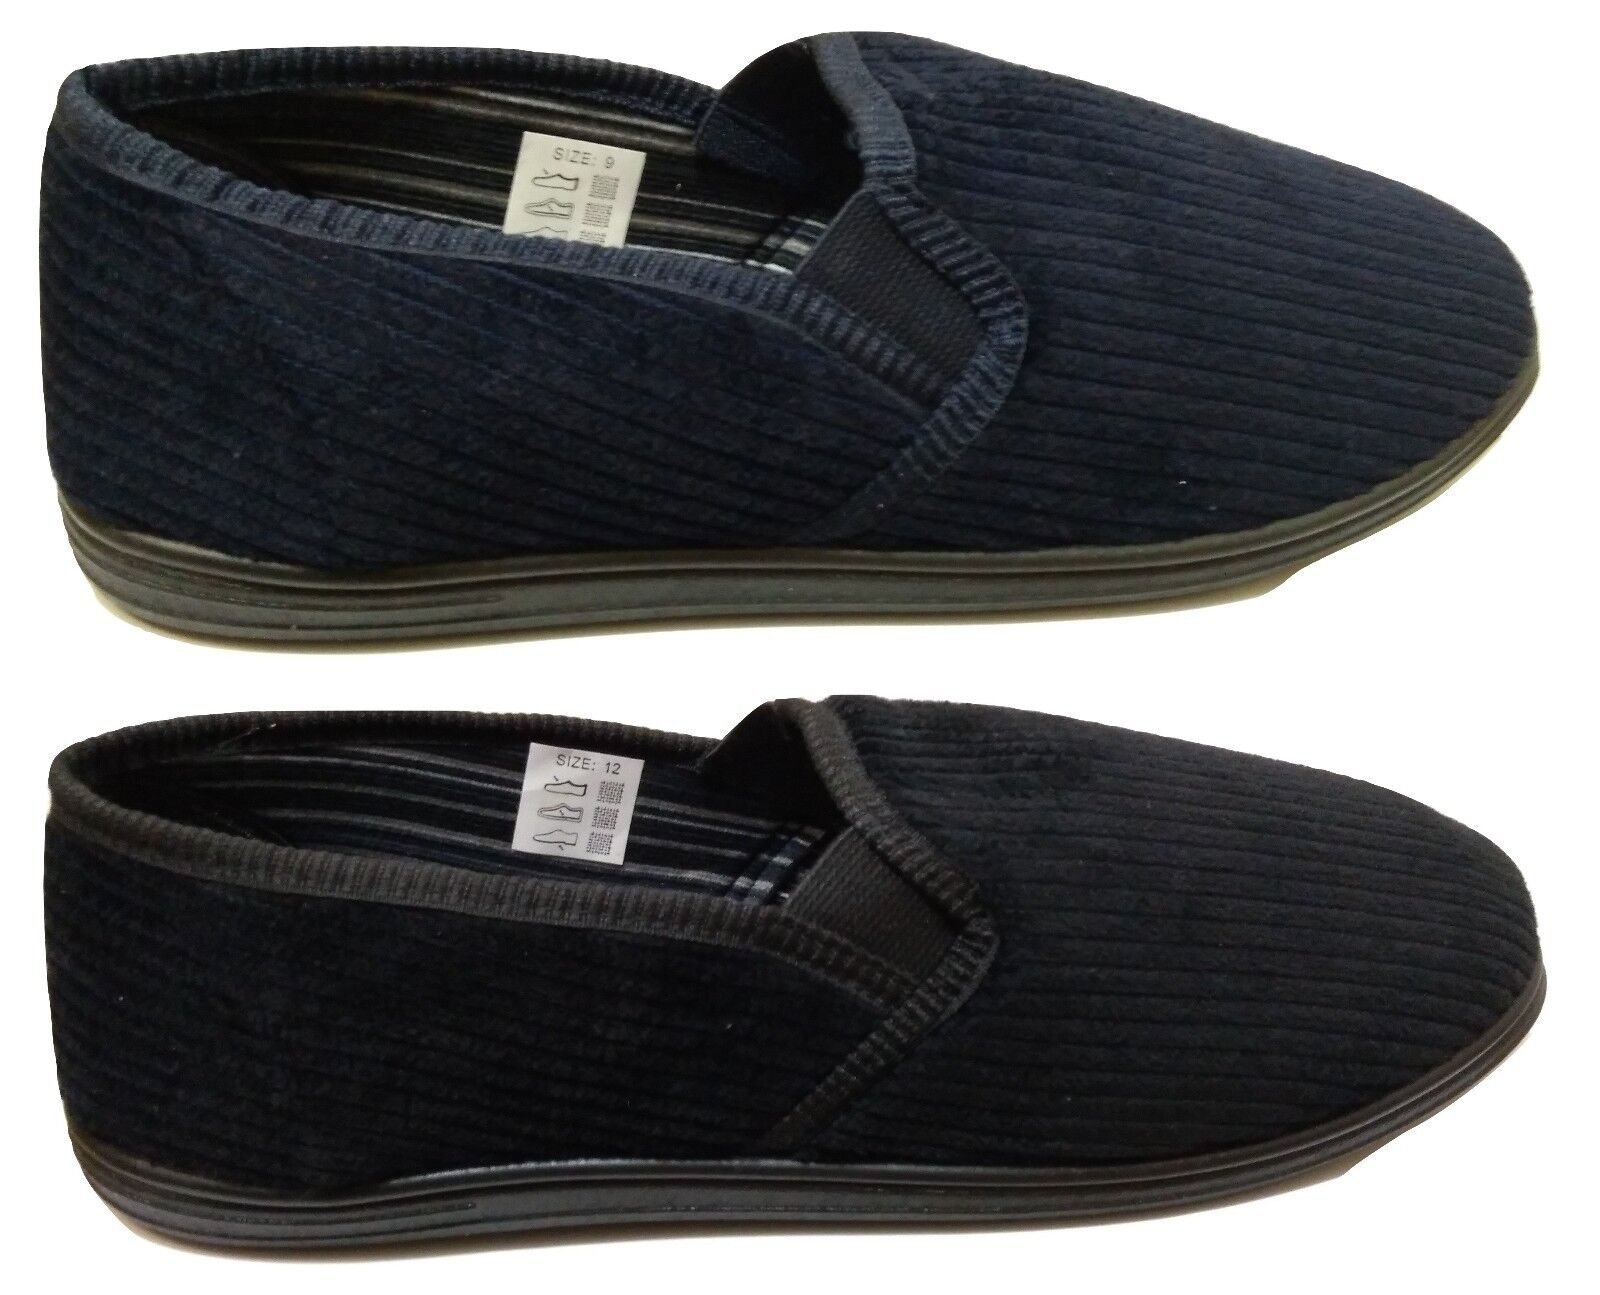 Hombre Clive Velour Elasticated Gusset Corduroy Slippers Velour Clive Moccasin Warm House Zapatos 5aca4c